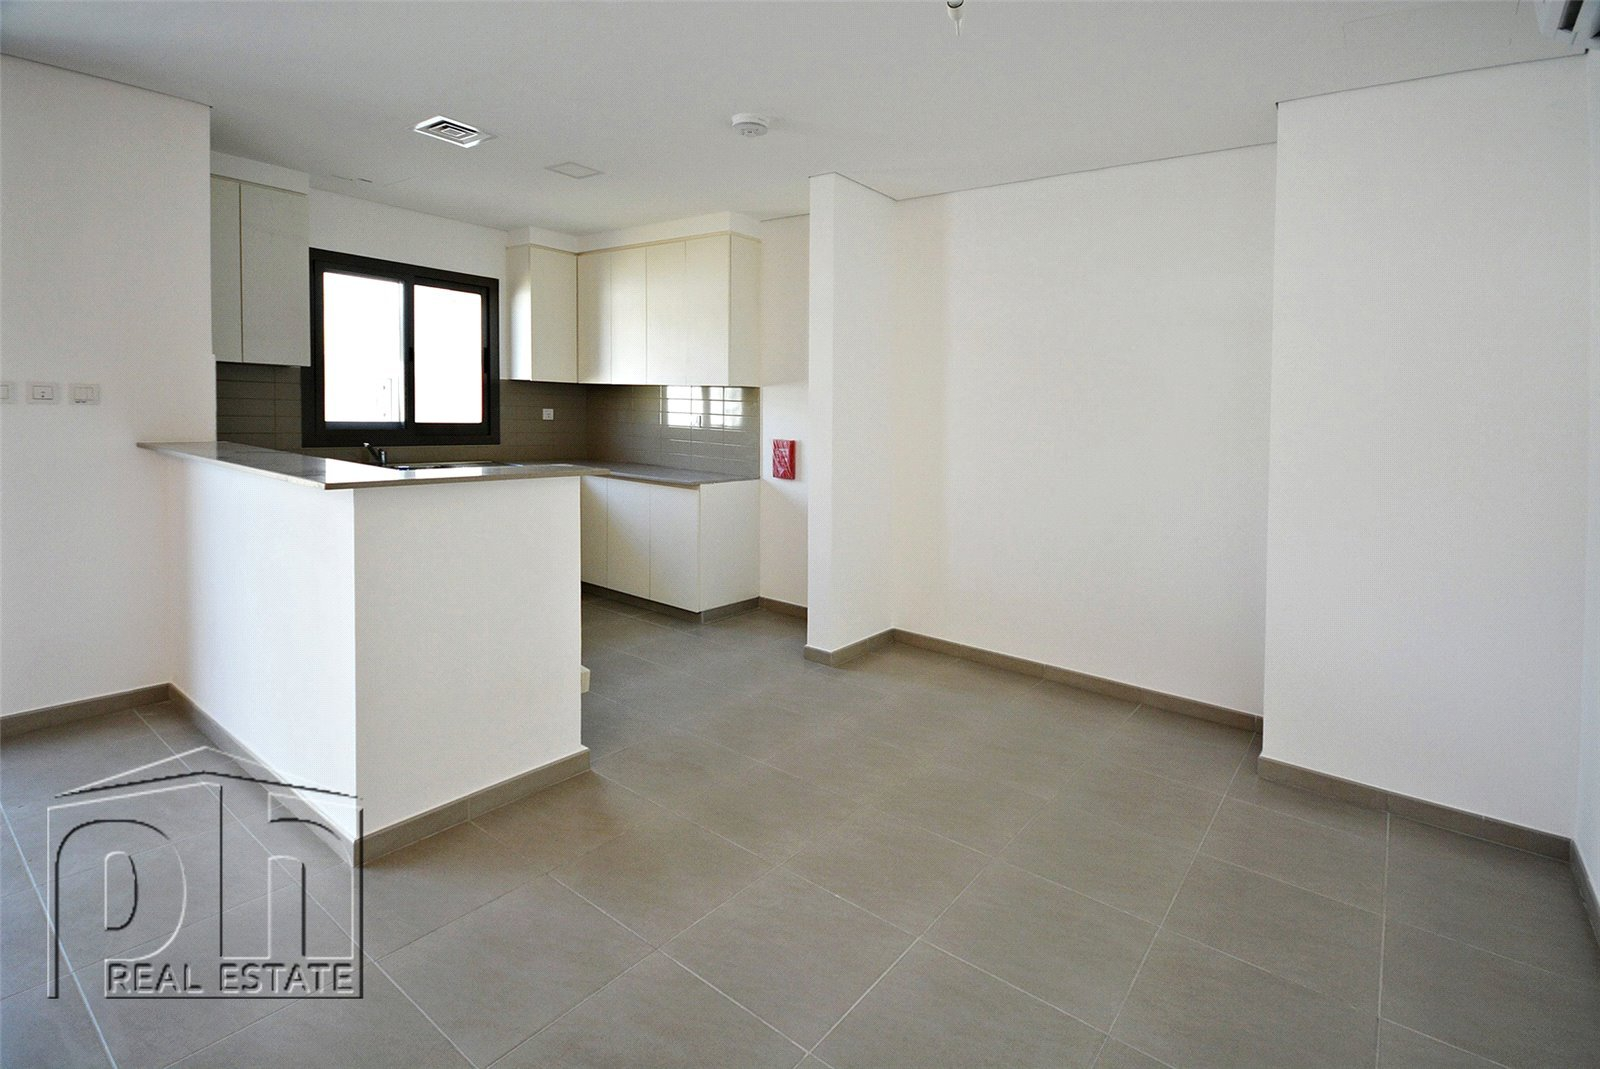 Dbl180764 L Three Bedroom Two Bathroom Villa To Rent In Hayat Townhouses Town Square Dubai